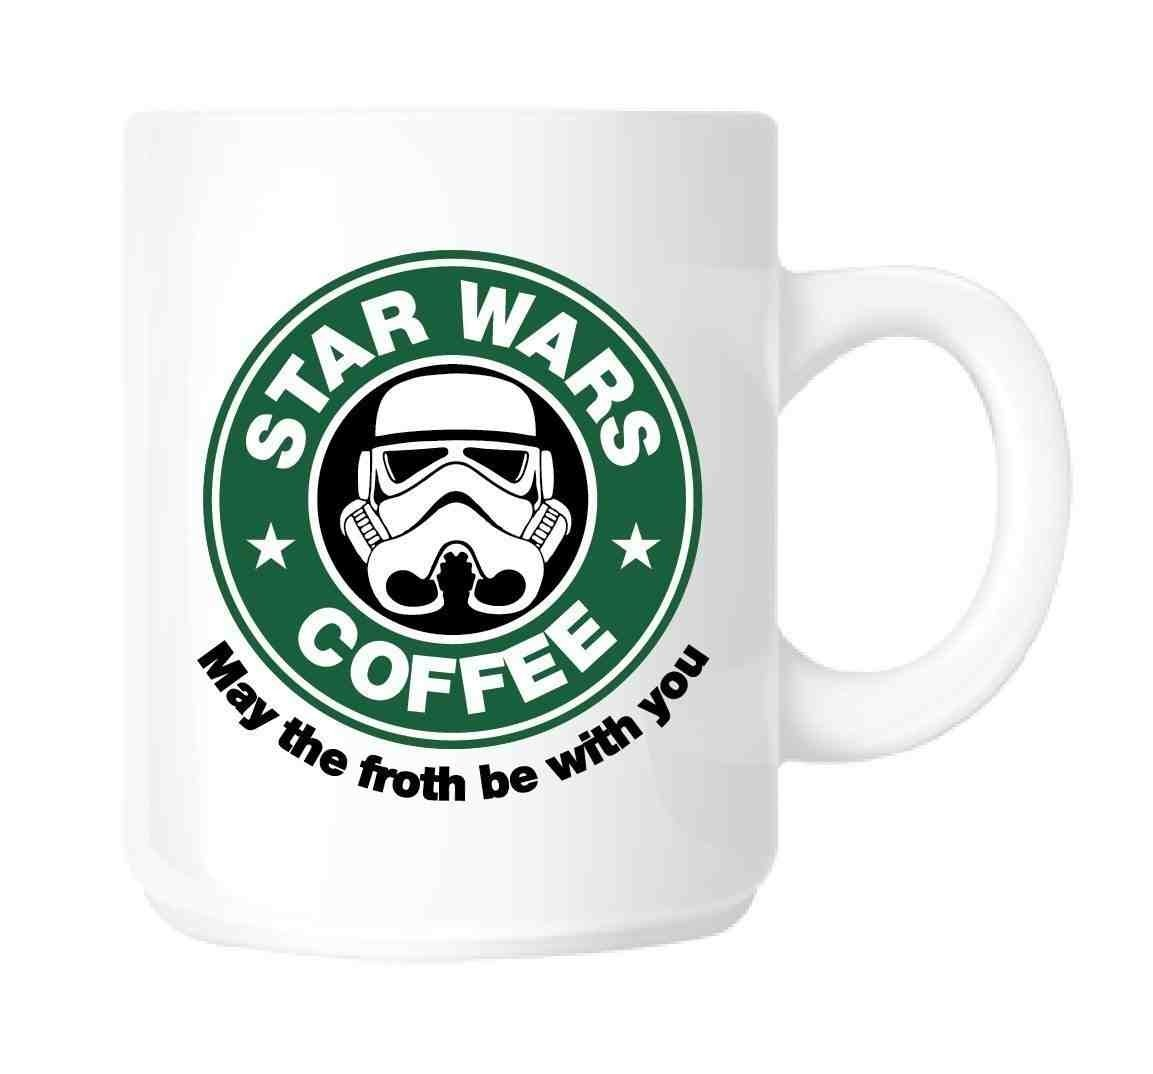 Star Wars Coffee Mug in Ceramic | Parody STAR WARS - STARBUCKS May The Froth Be With You Star Wars by DURSHANI